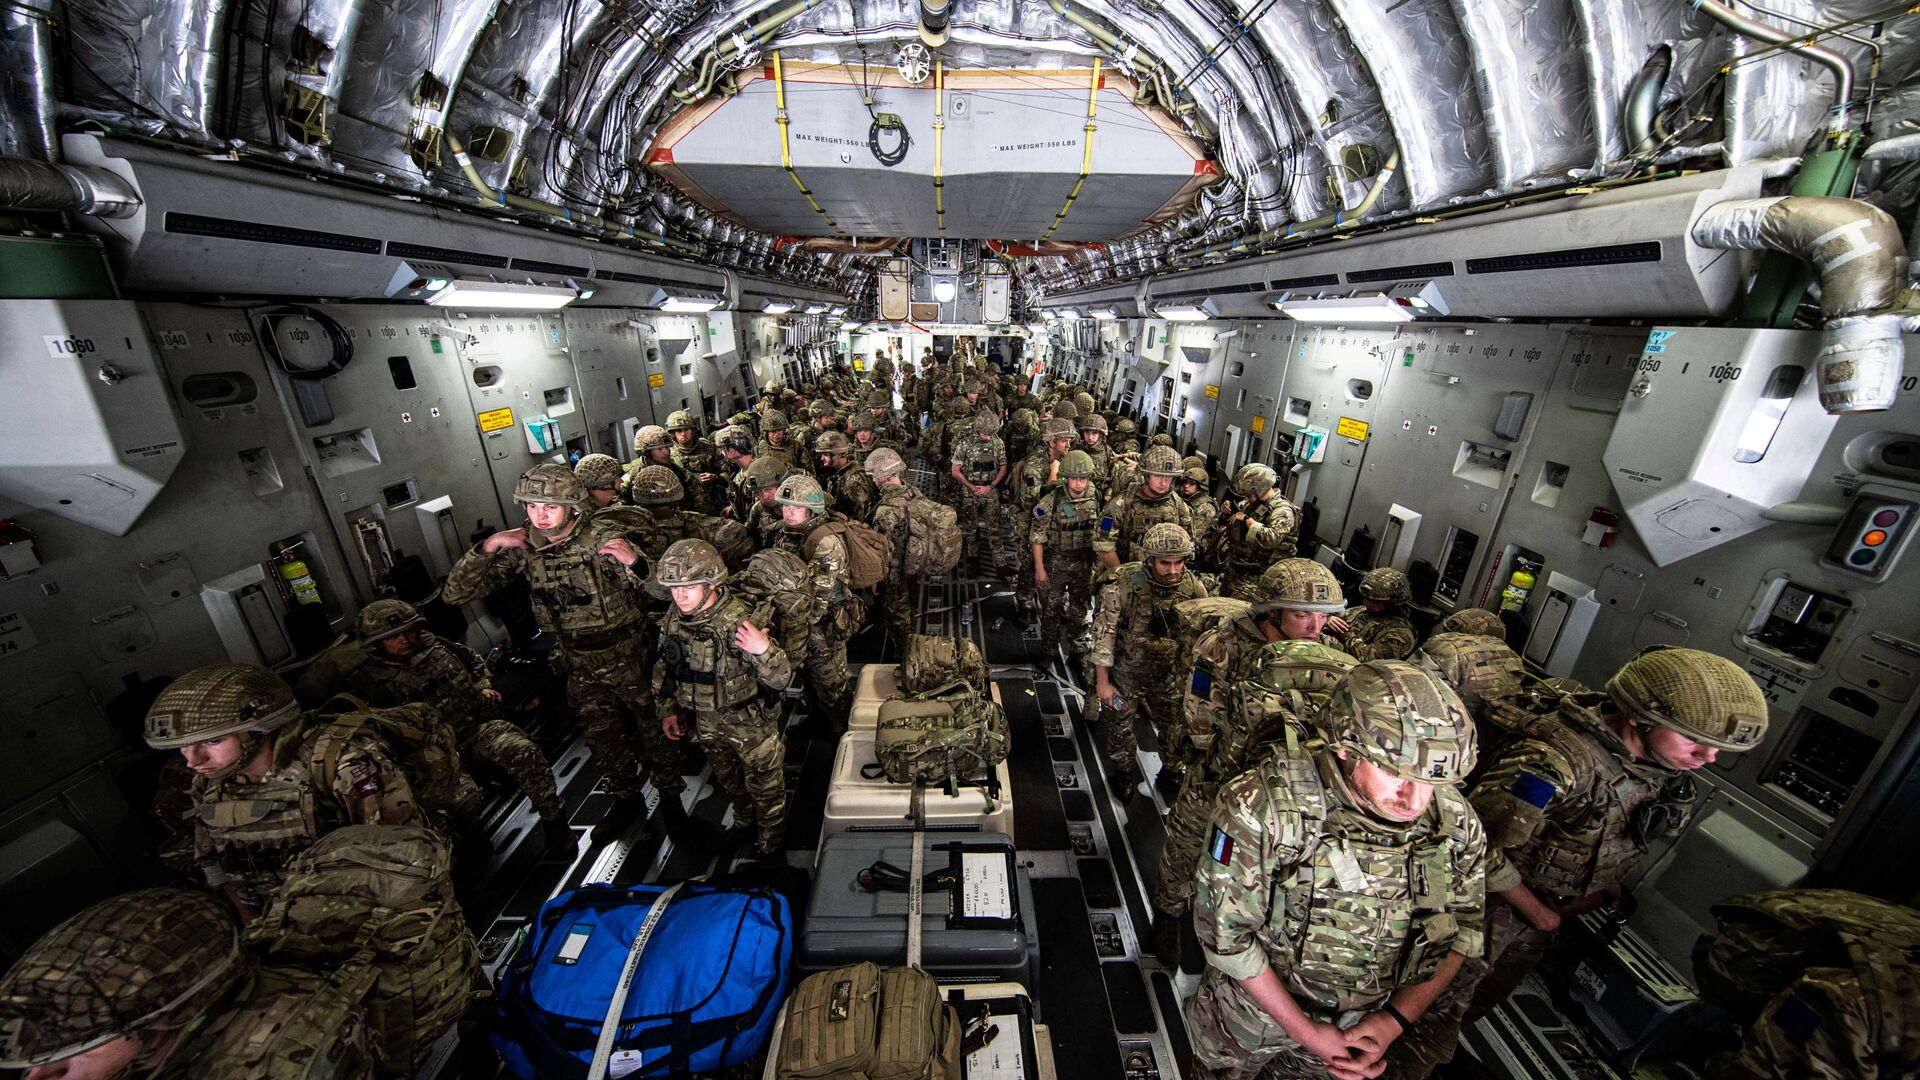 British Forces from 16 Air Assault Brigade arrive in Kabul, Afghanistan, to provide support to British nationals leaving the country, as part of Operation PITTING after Taliban insurgents took control of the presidential palace in Kabul, 15 August 2021. Leading Hand Ben Shread/RAF/UK Ministry of Defence 2021/Handout via REUTERS   THIS IMAGE HAS BEEN SUPPLIED BY A THIRD PARTY. - Sputnik International, 1920, 19.08.2021